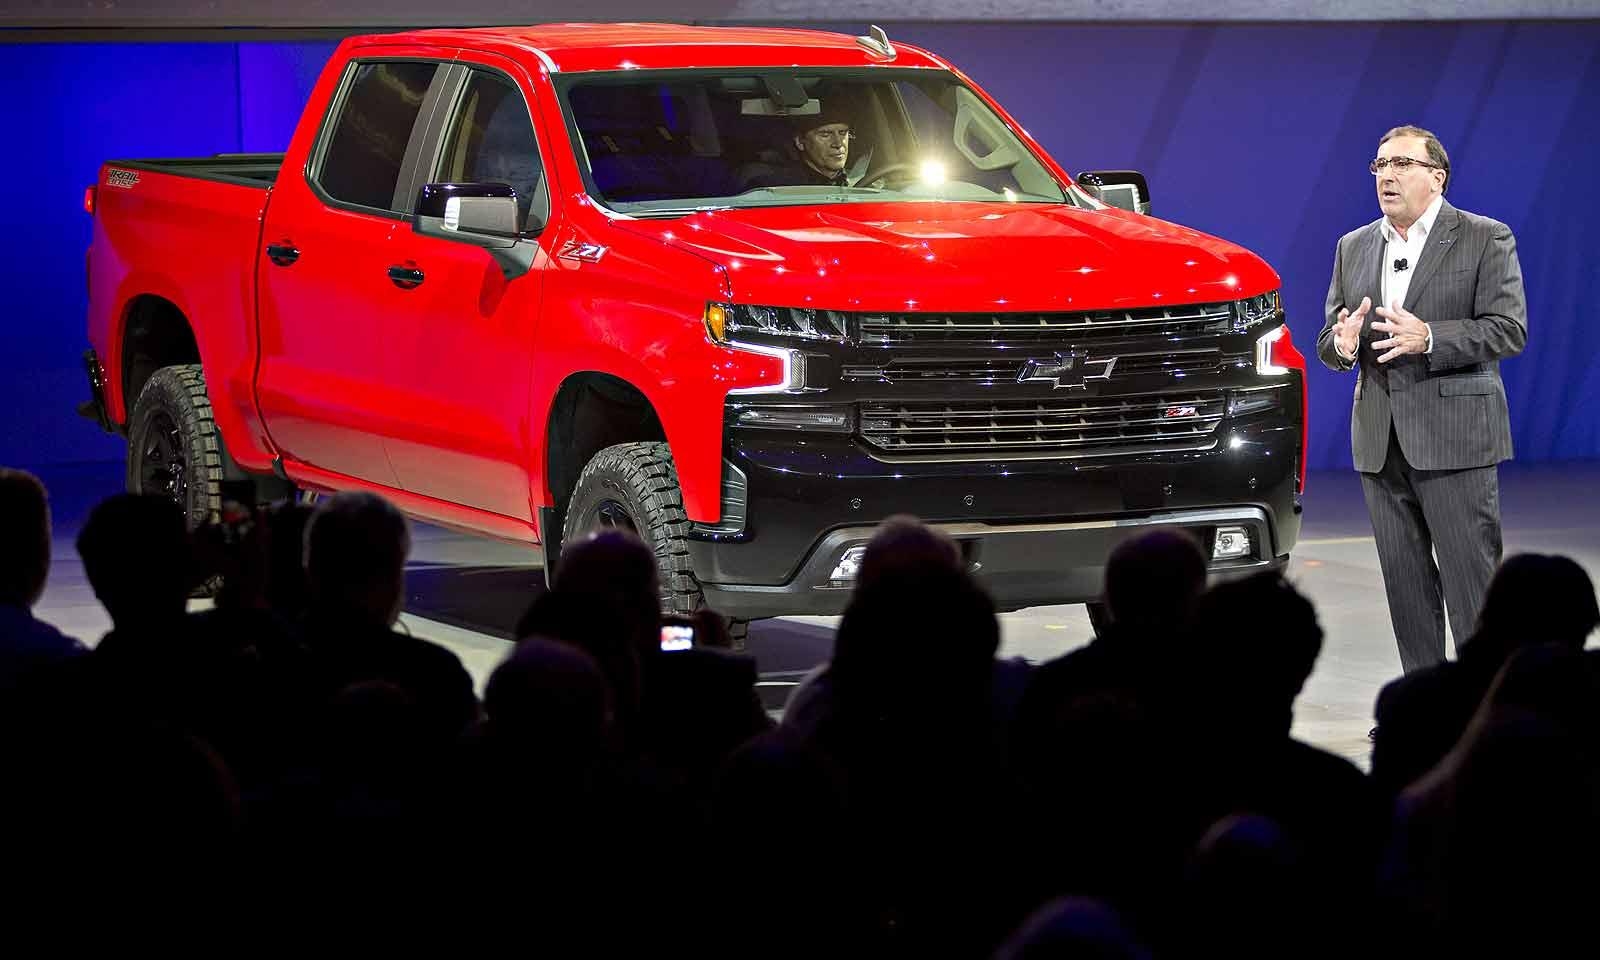 GM's 2 7-liter turbo engine is in the wrong truck